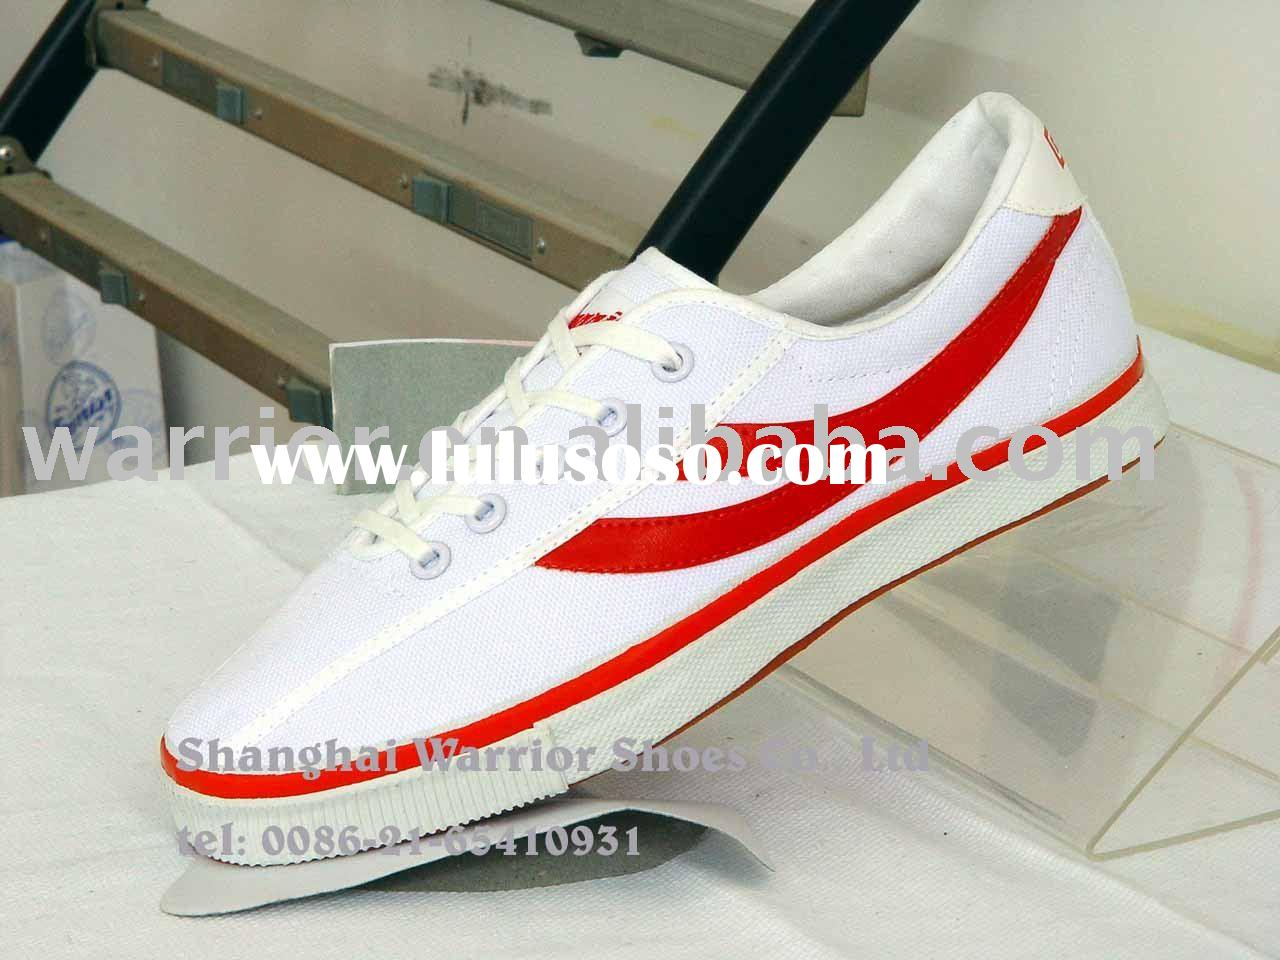 Warrior Table Tennis Shoes/Casual Shoes/sports Shoes Art No.WT-811